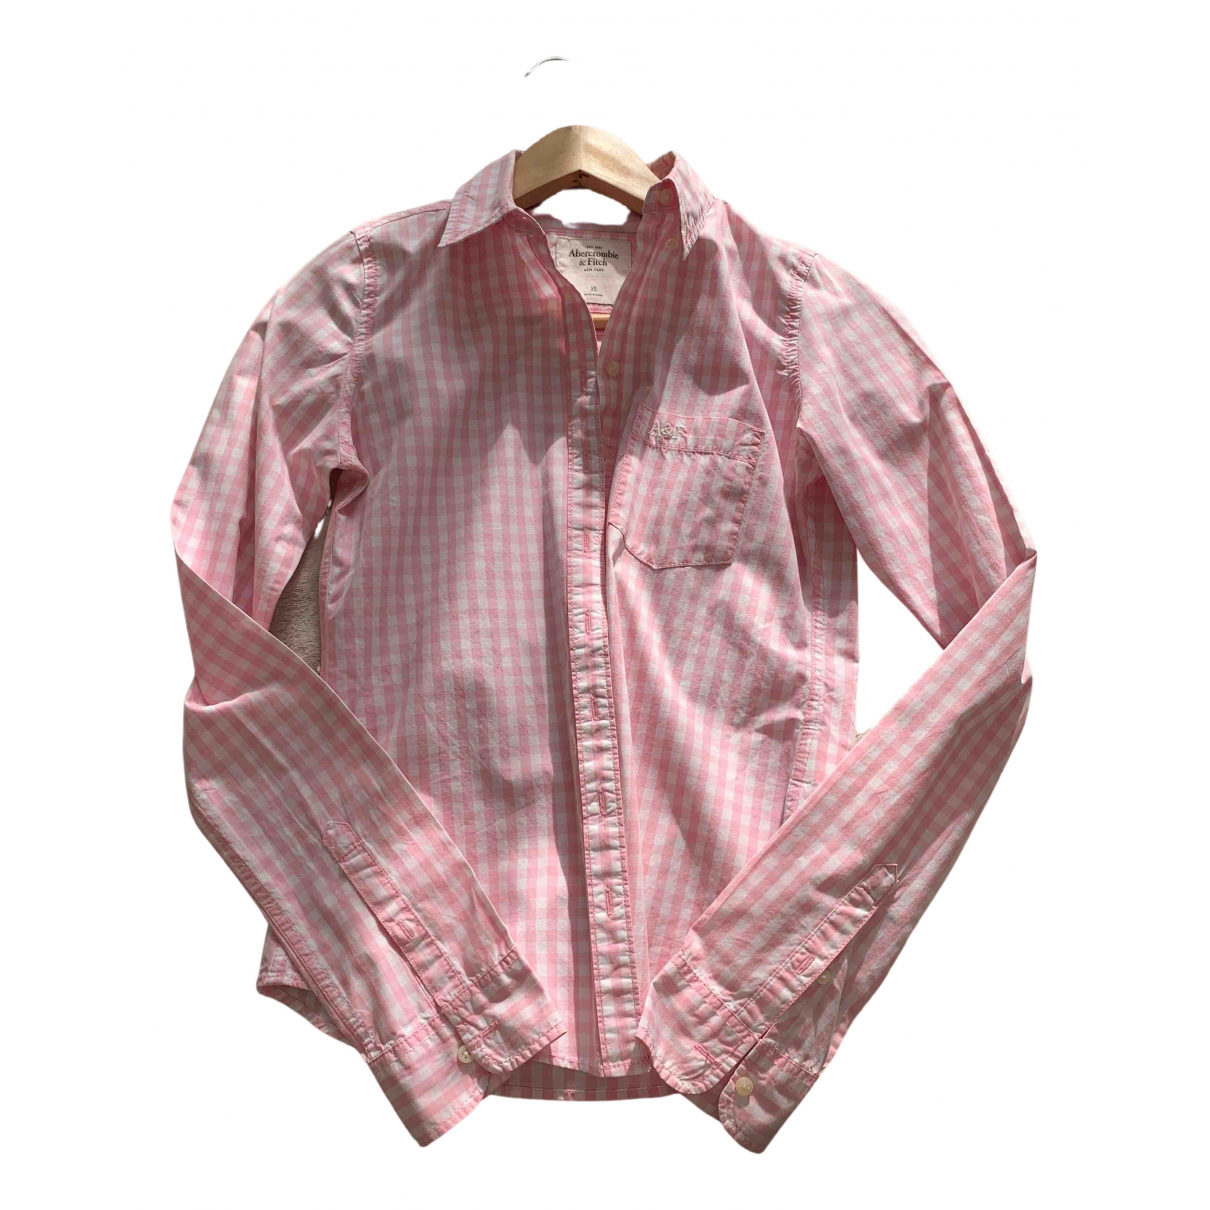 Abercrombie & Fitch N Pink Cotton  top for Women XS International